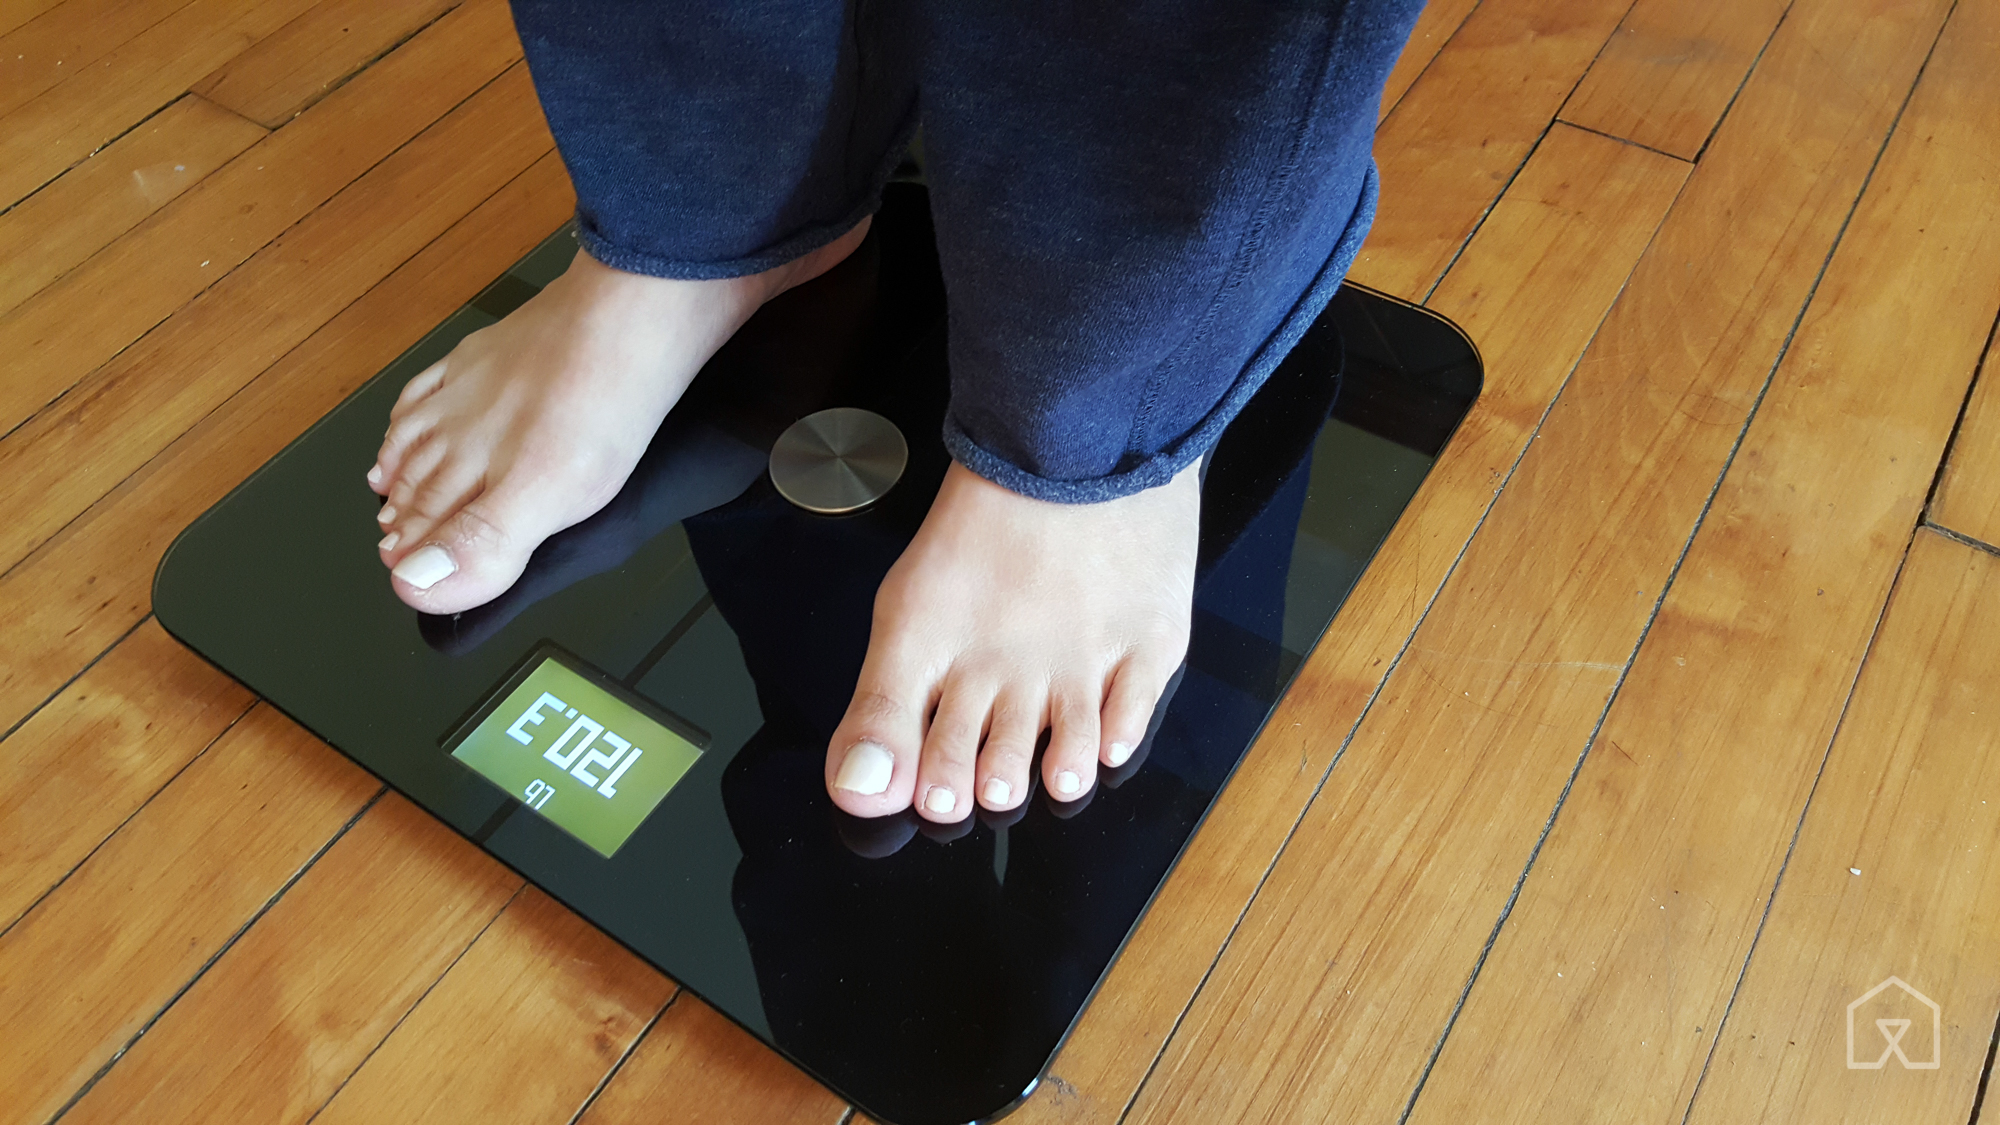 Stand up bathroom scales - Smart Or Not The Withings Body Is One Of The More Pleasant Scales To Stand On Though You Need To Balance Yourself Properly On The Scale To Get Your Final